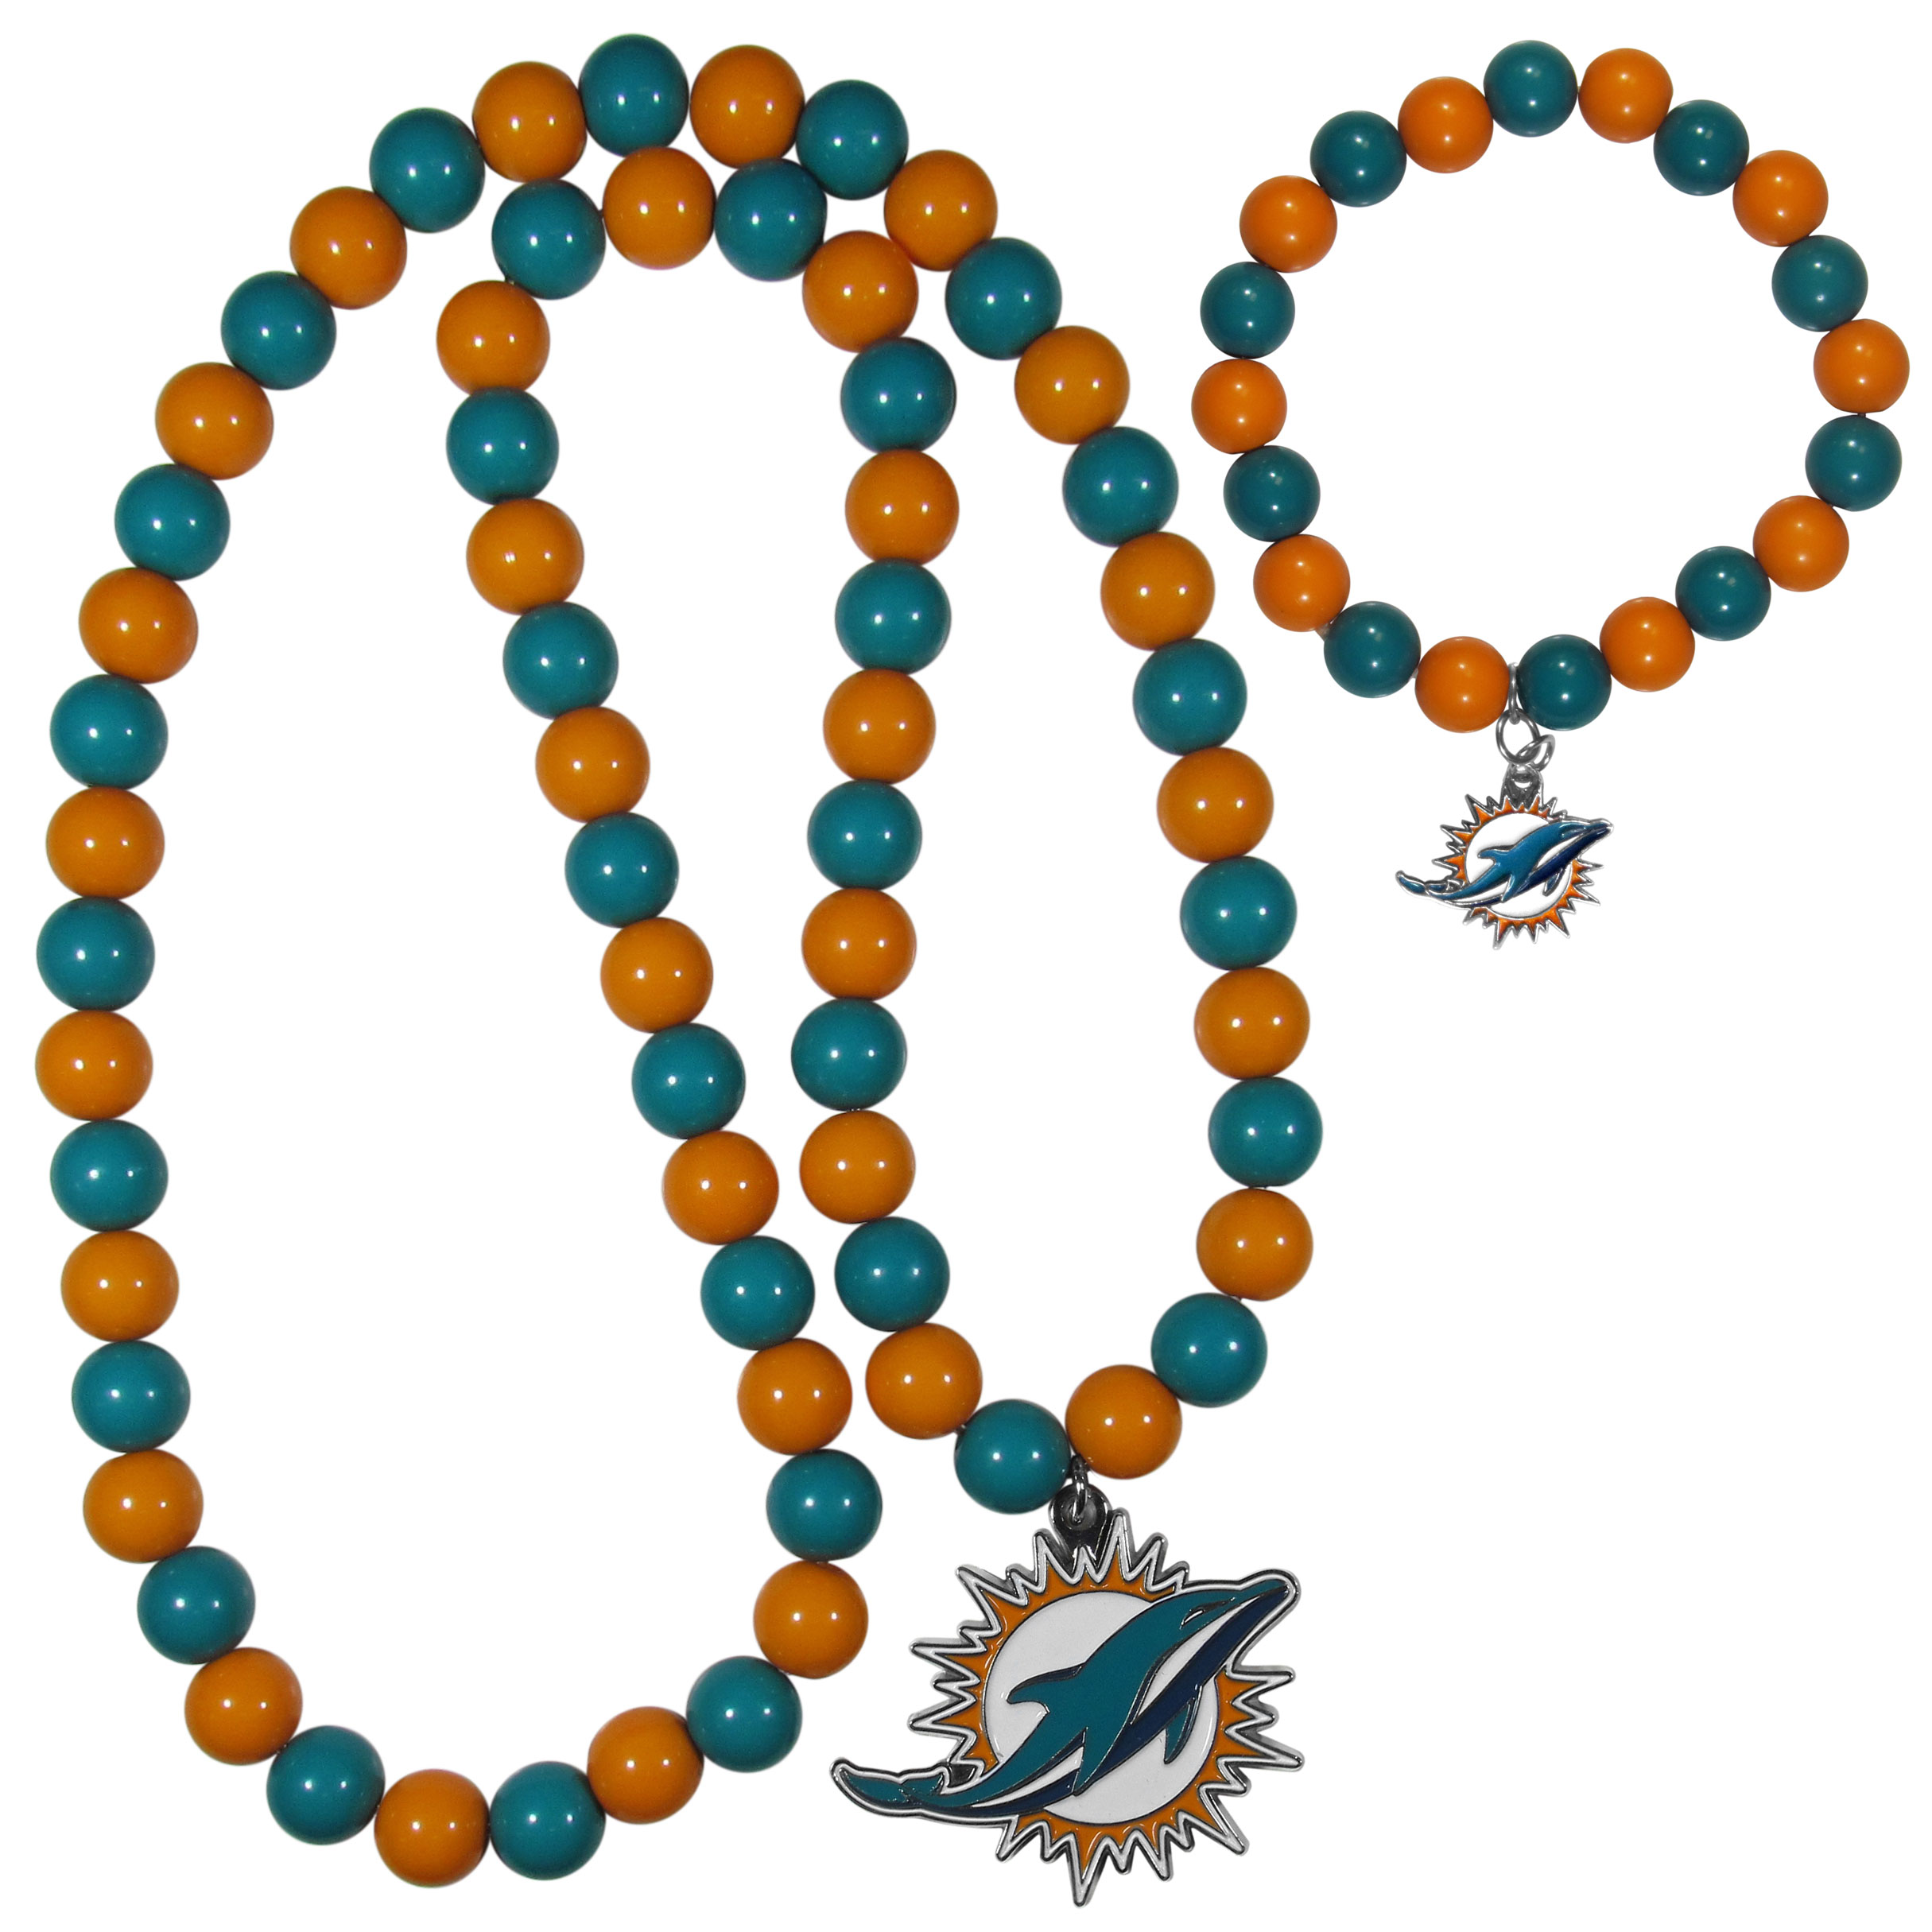 Miami Dolphins Fan Bead Necklace and Bracelet Set - These fun and colorful Miami Dolphins fan bead jewelry pieces are an eyecatching way to show off your team spirit. The striking necklace is a 24 inch string of alternating team colored beads with a large team pendant. The mathcing bracelet has alternating team colored beads on a stretch cord and features a matching team charm.